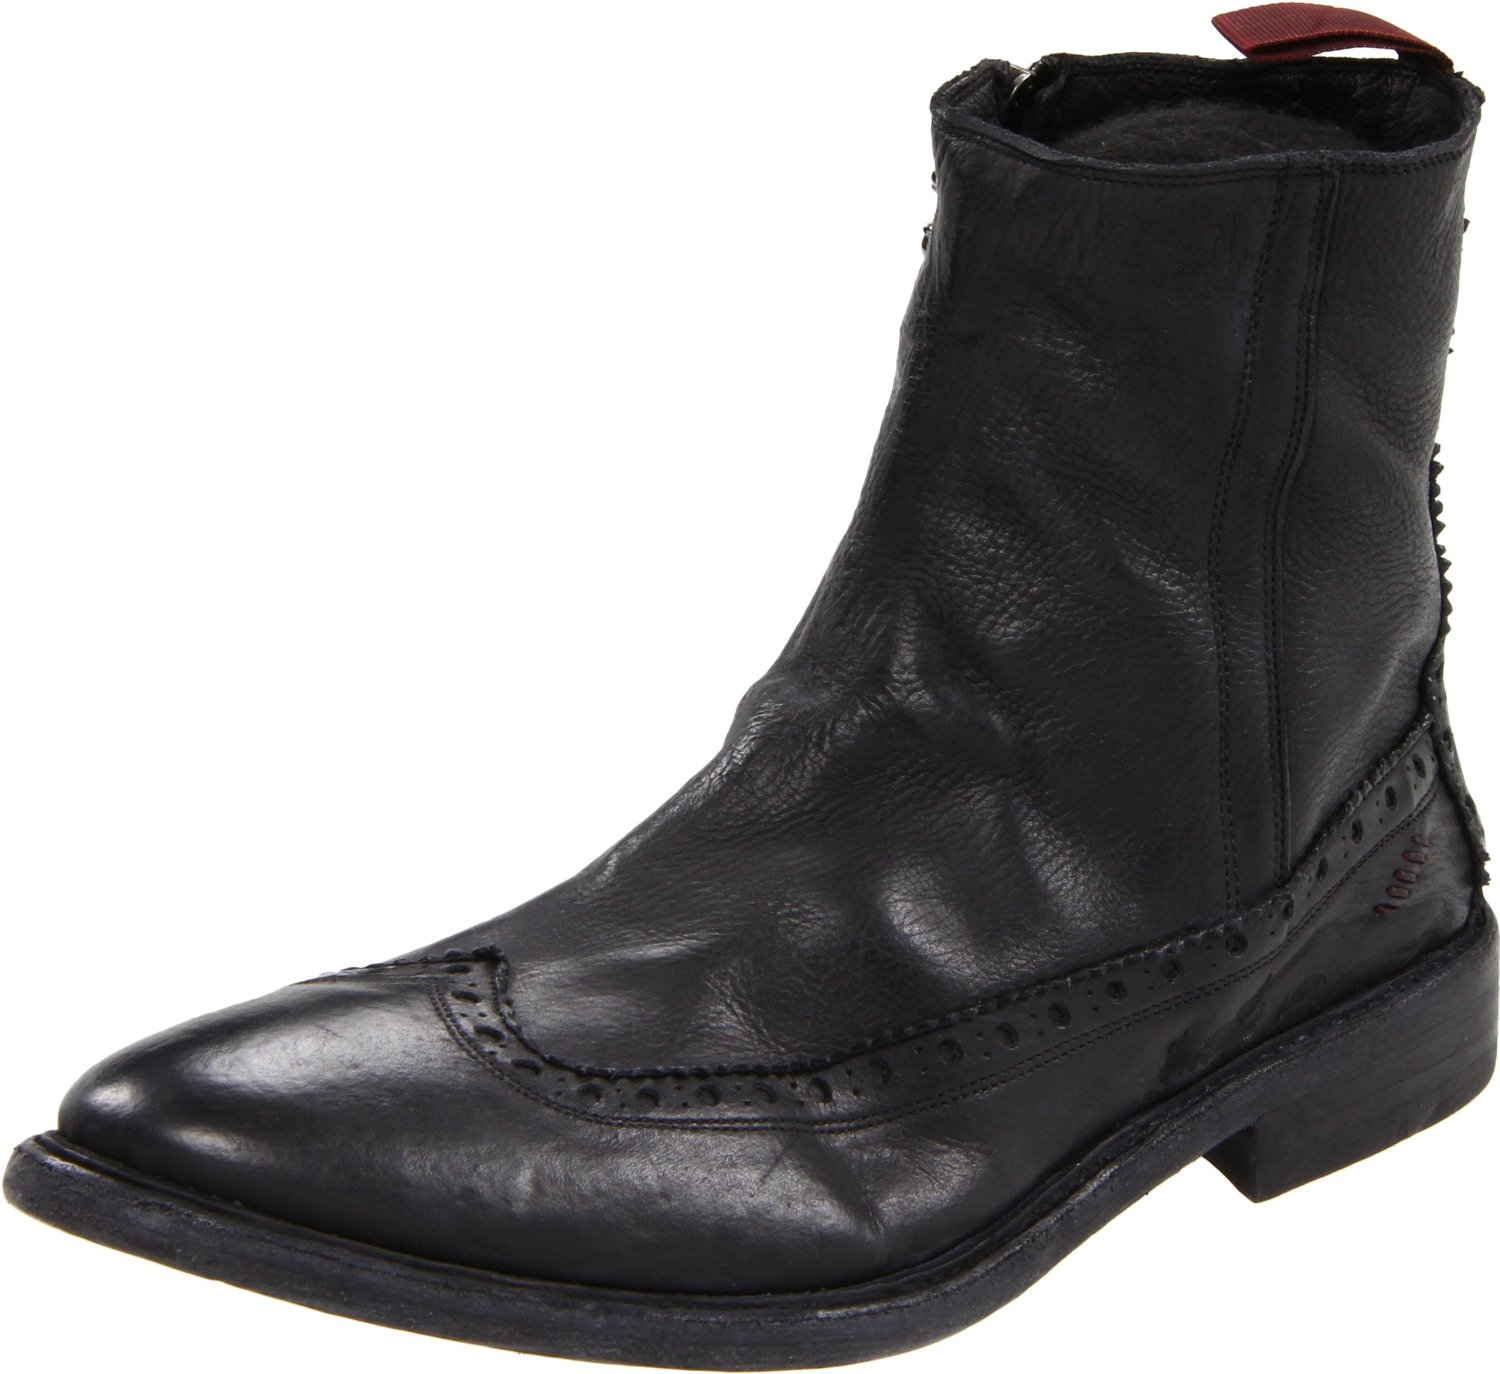 nason black single women Mark nason los angeles all sale shop shoescom's huge selection of mark nason los angeles all and save big over 40 styles available free shipping & exchanges, and a 100% price guarantee.